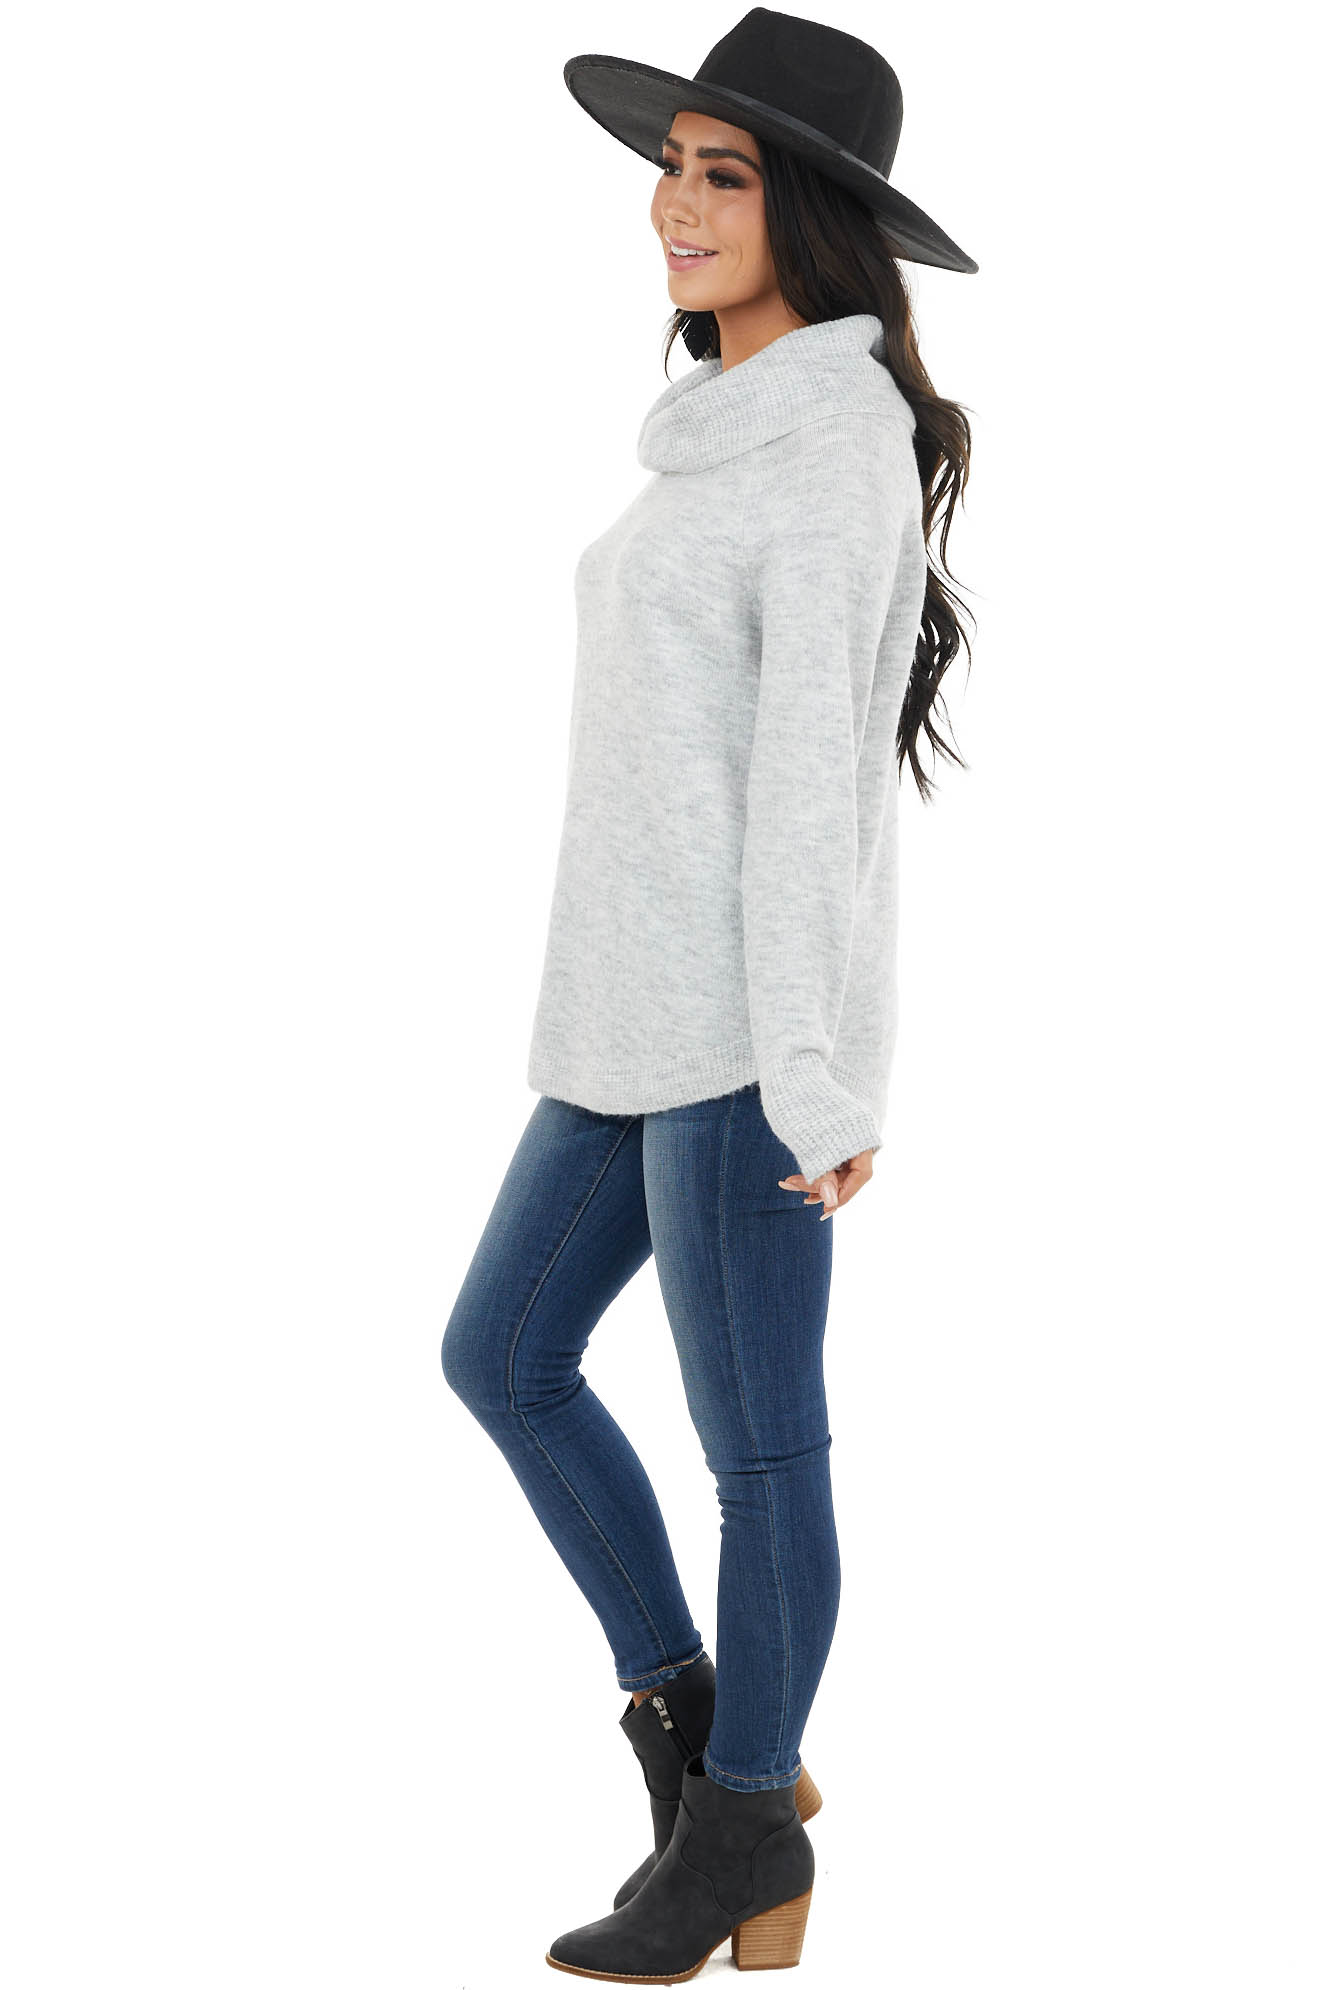 Dove Grey Lightweight Sweater with Fold Over Cowl Neck